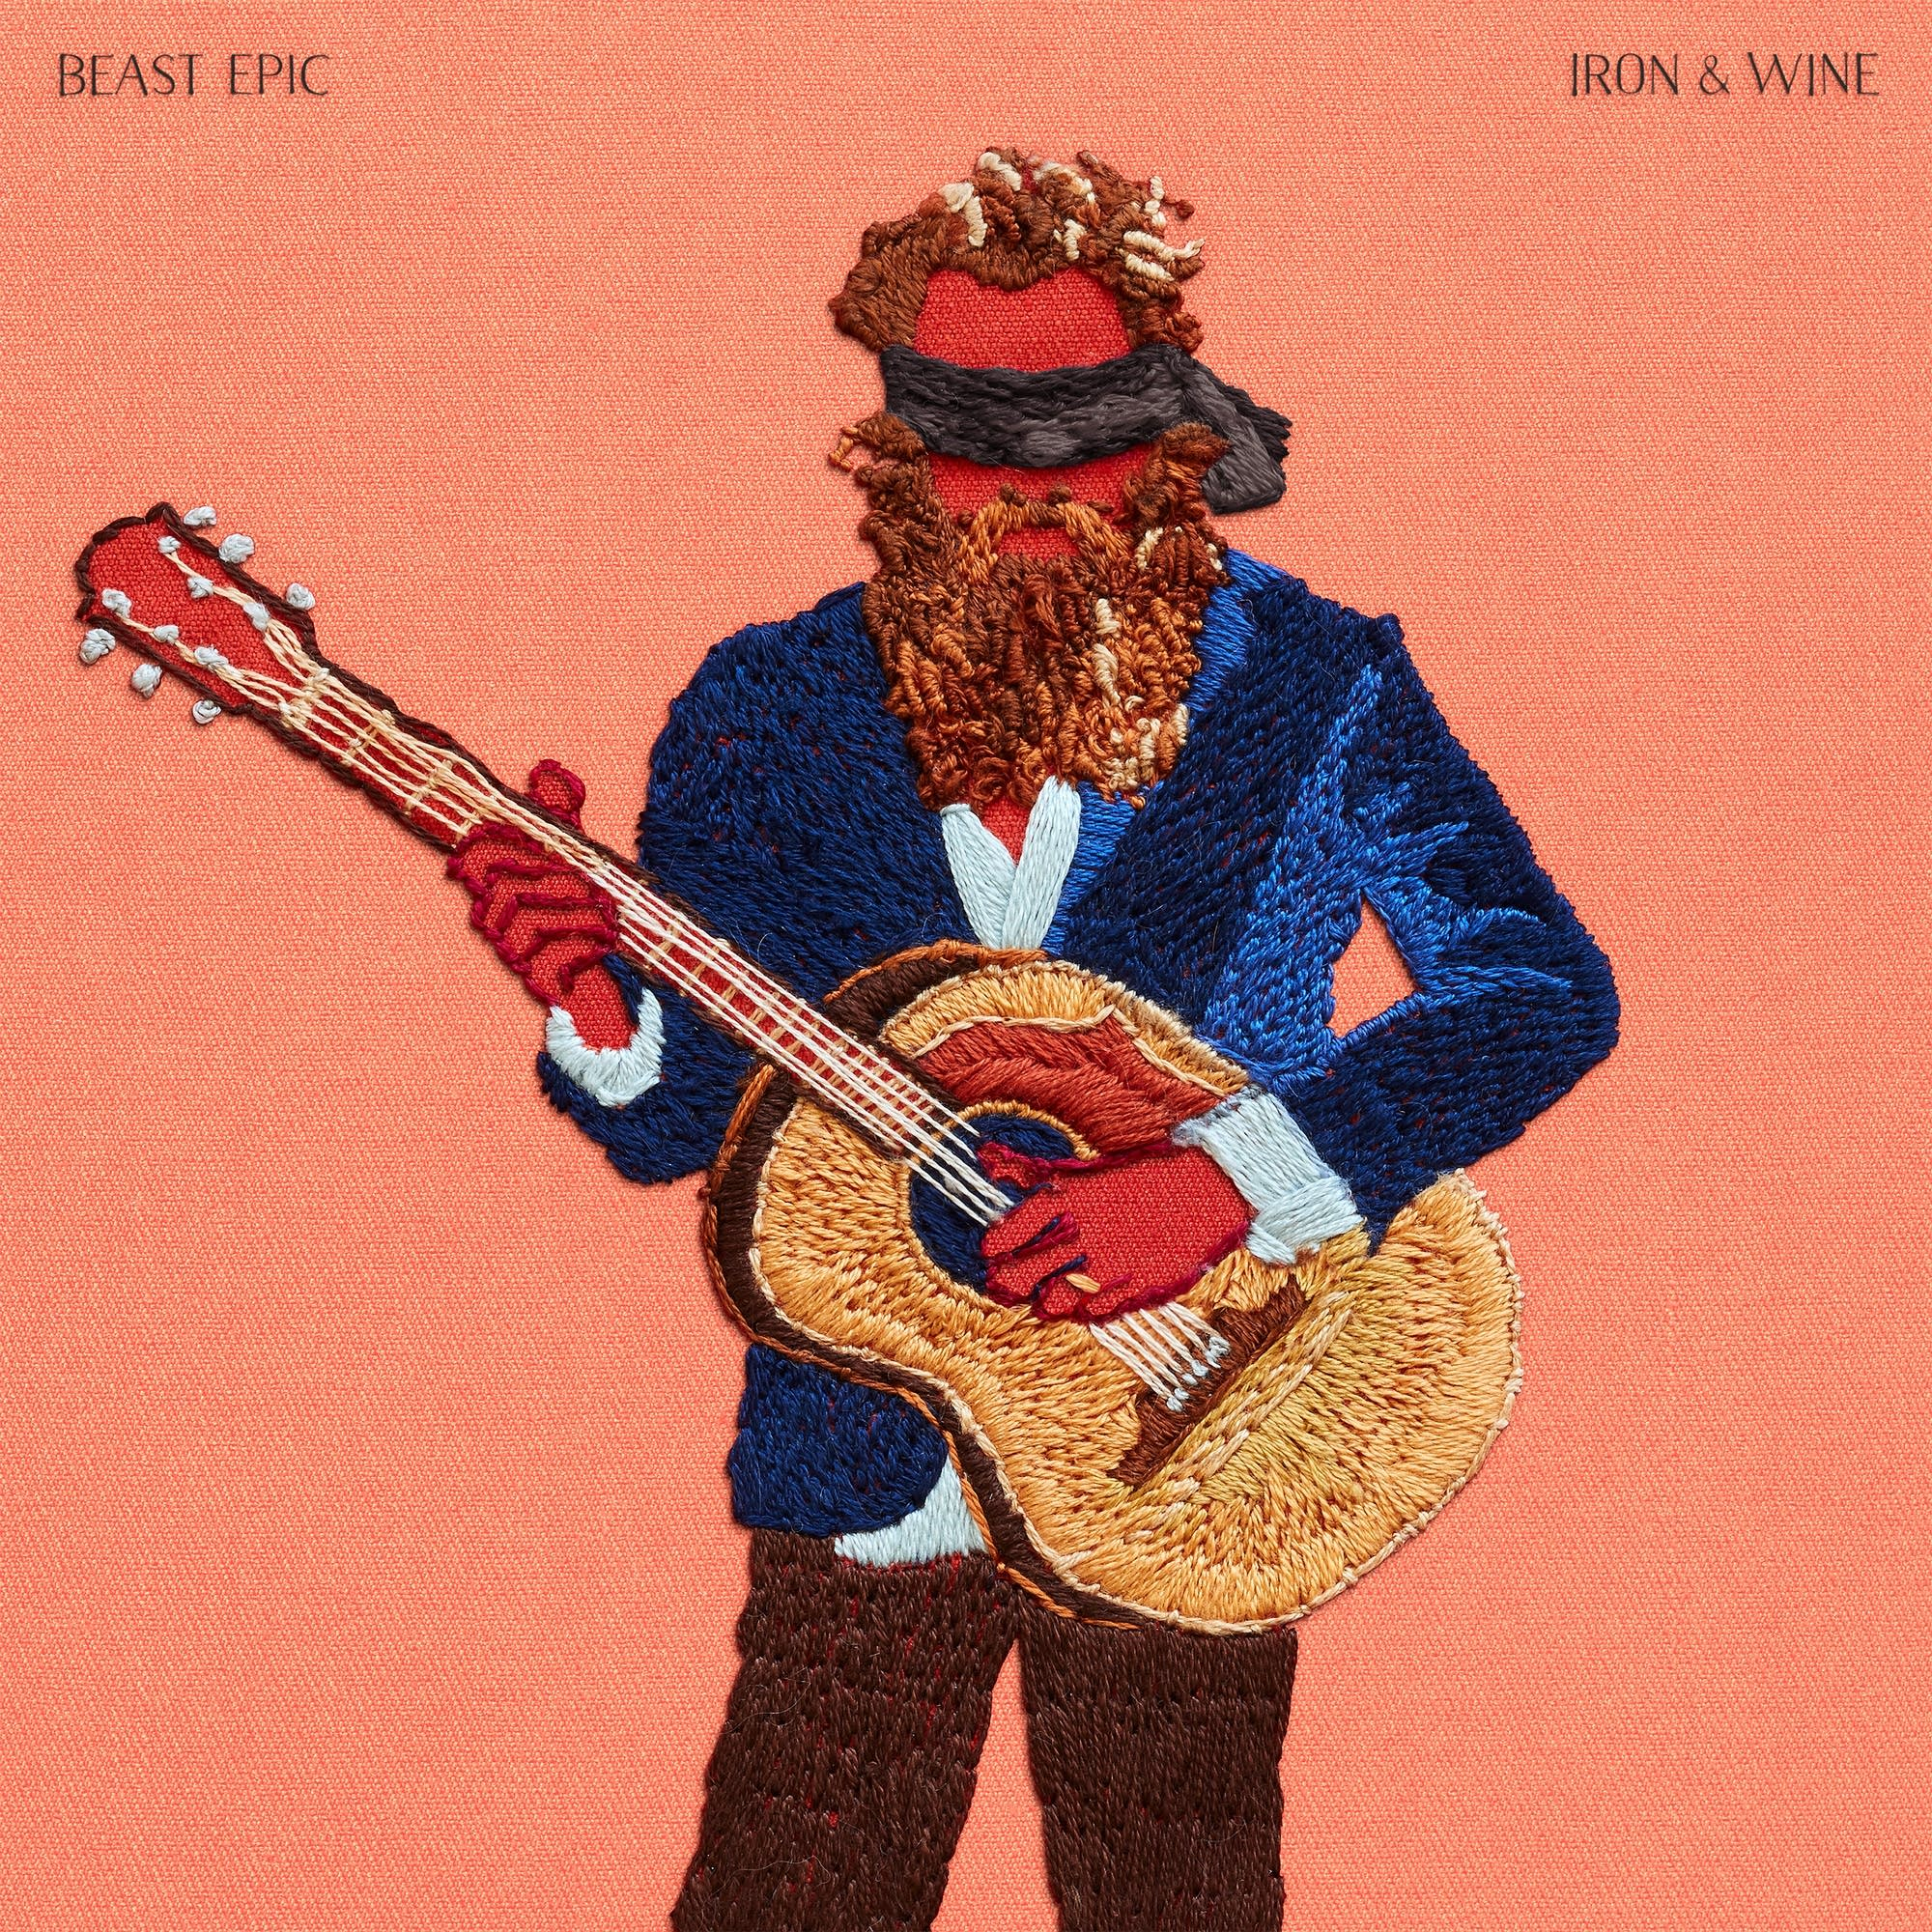 Iron & Wine, 'Beast Epic'